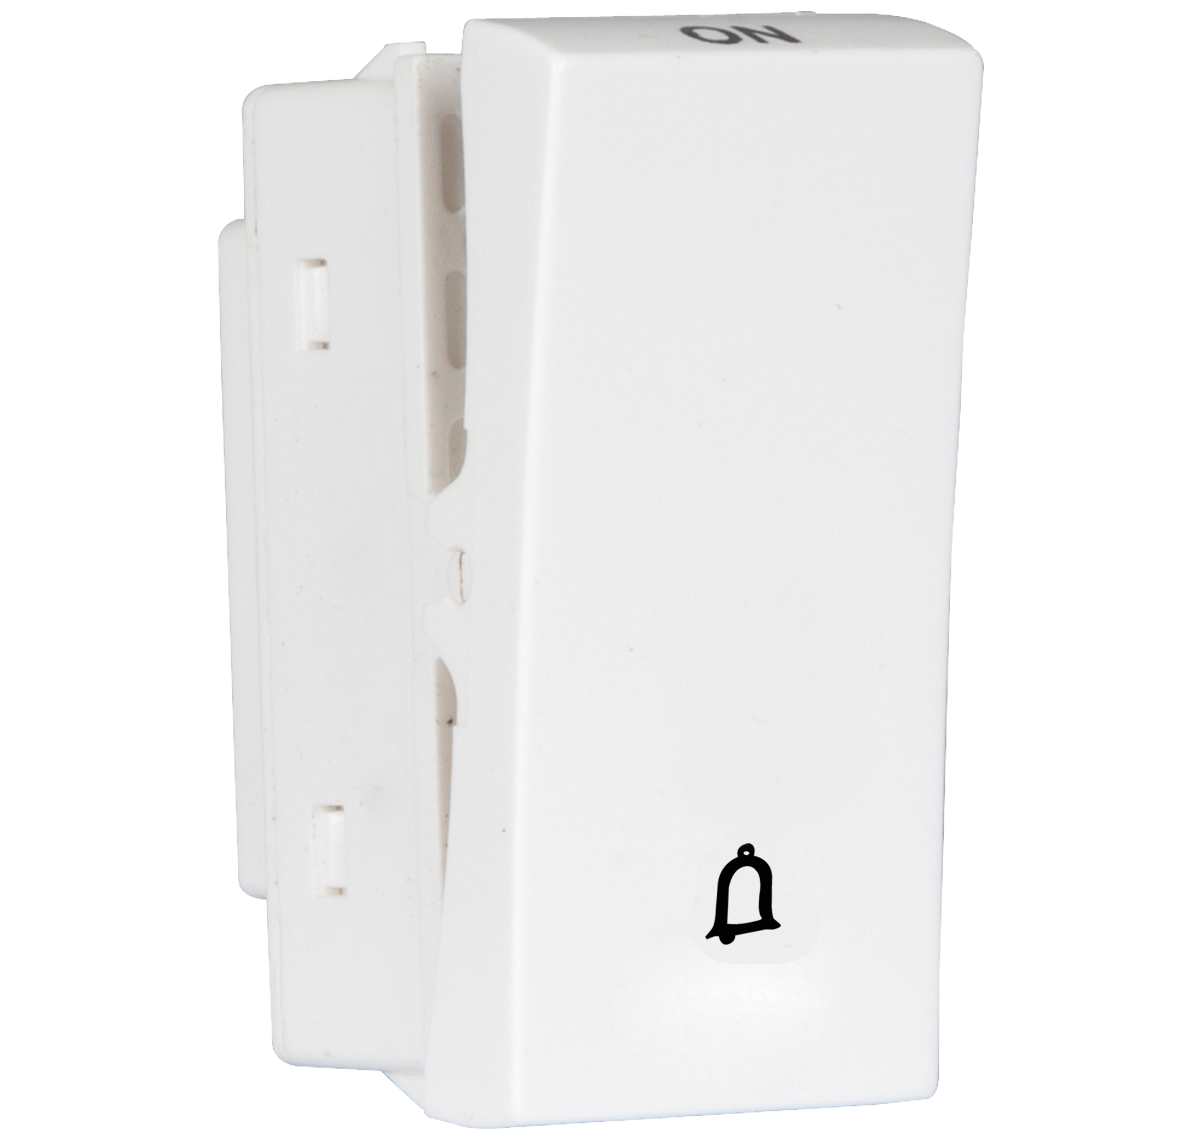 Crabtree - 10 AX one way bell push switch